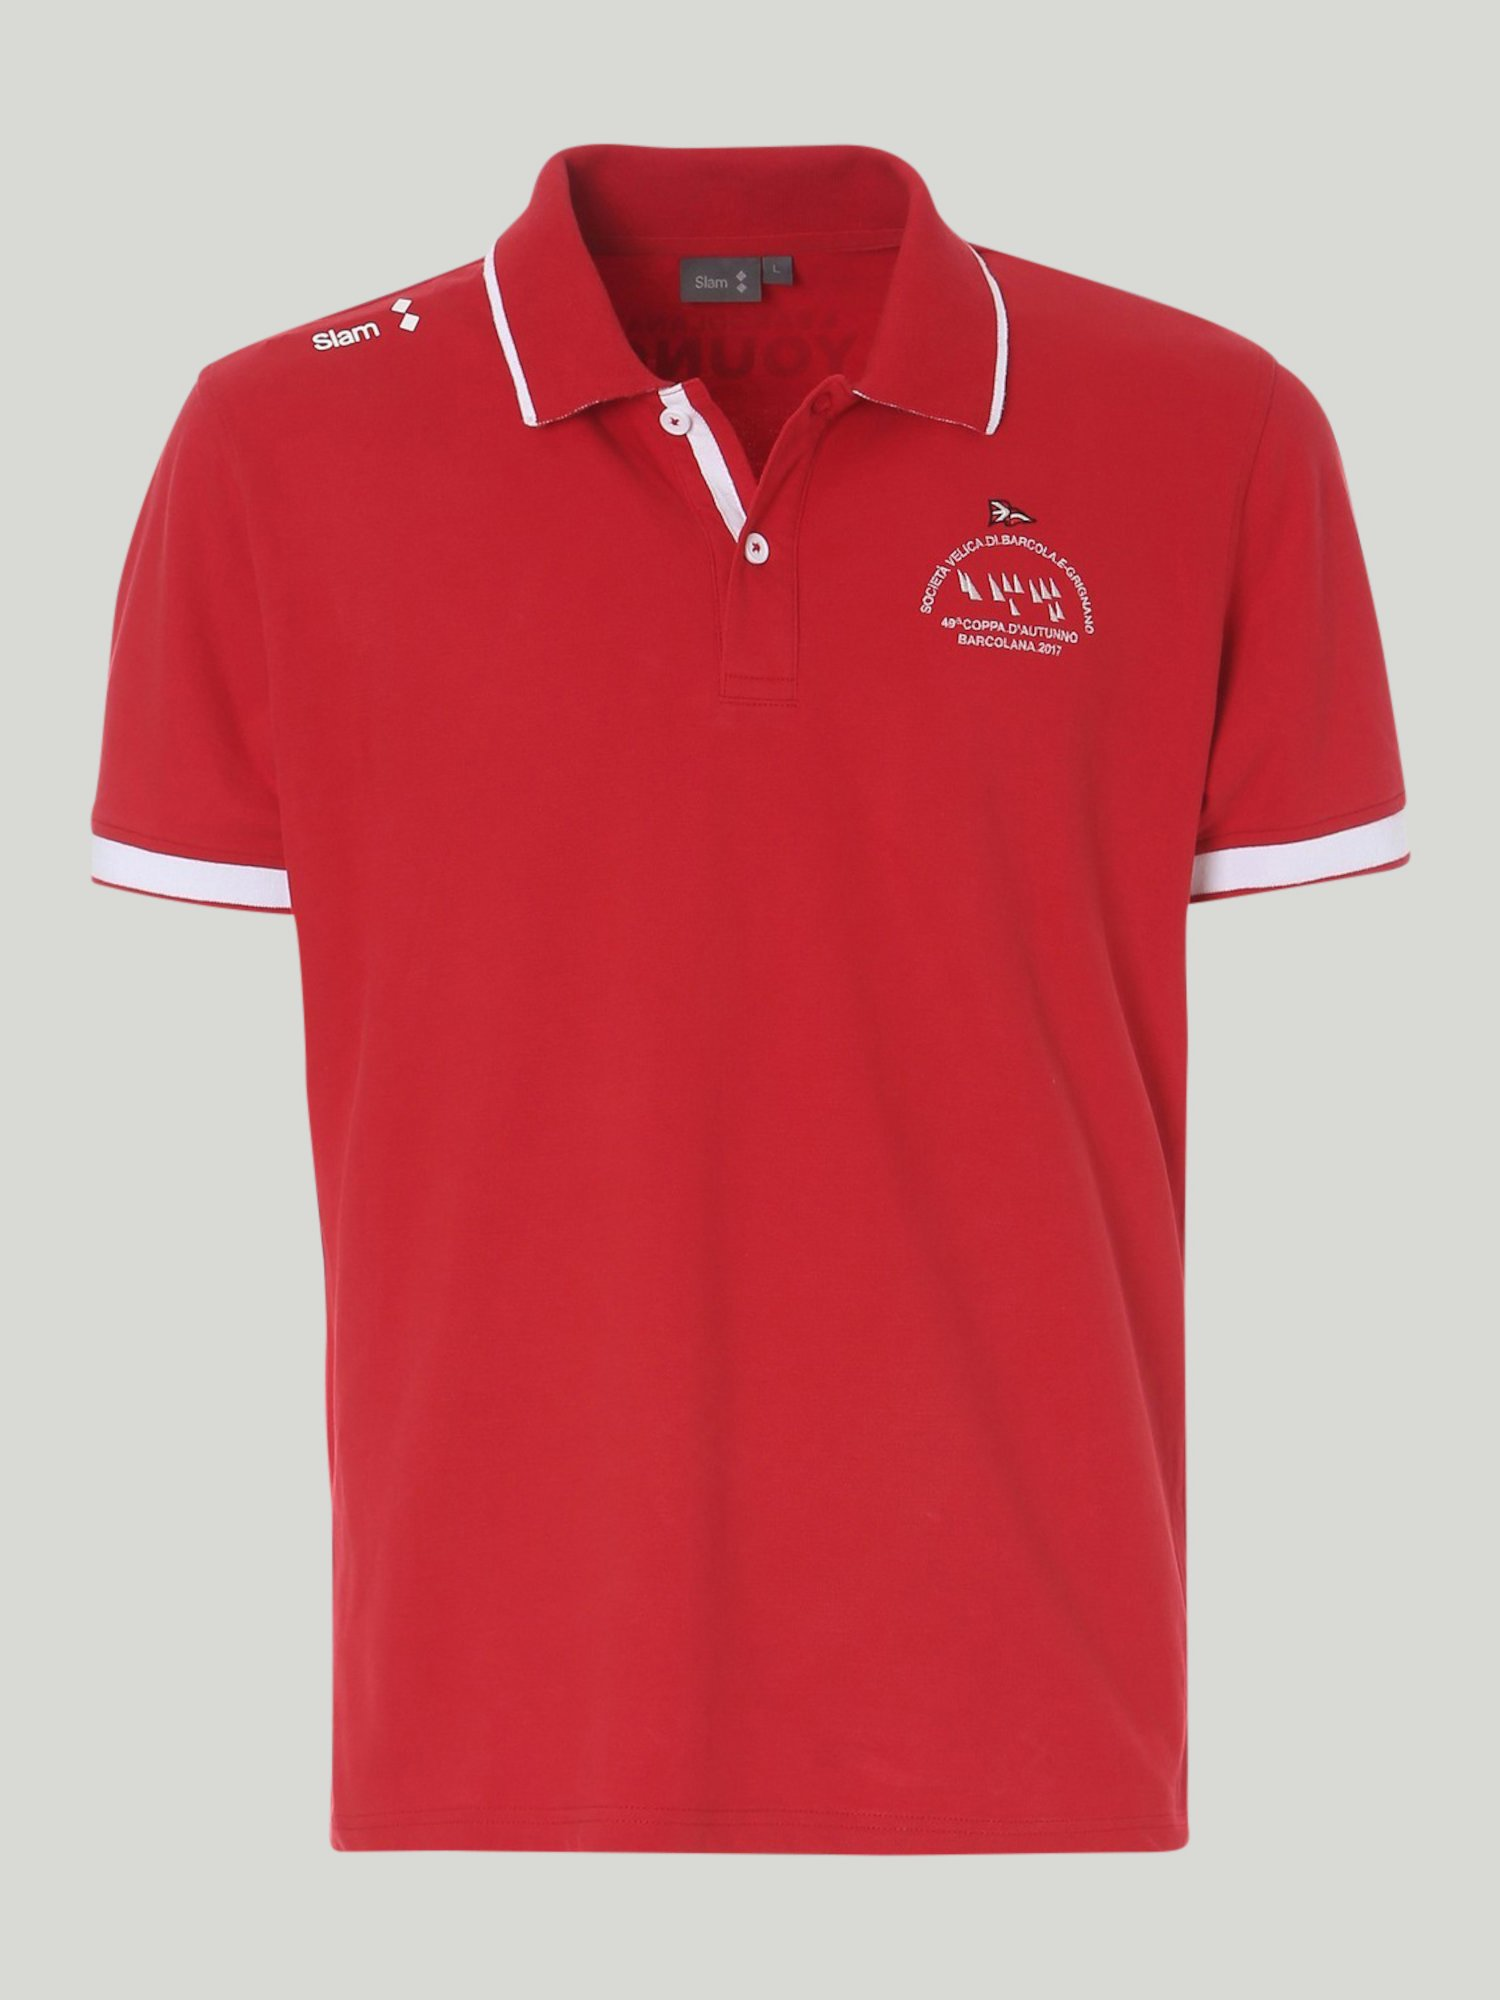 49 Barcolana Young polo shirt - Chili Red